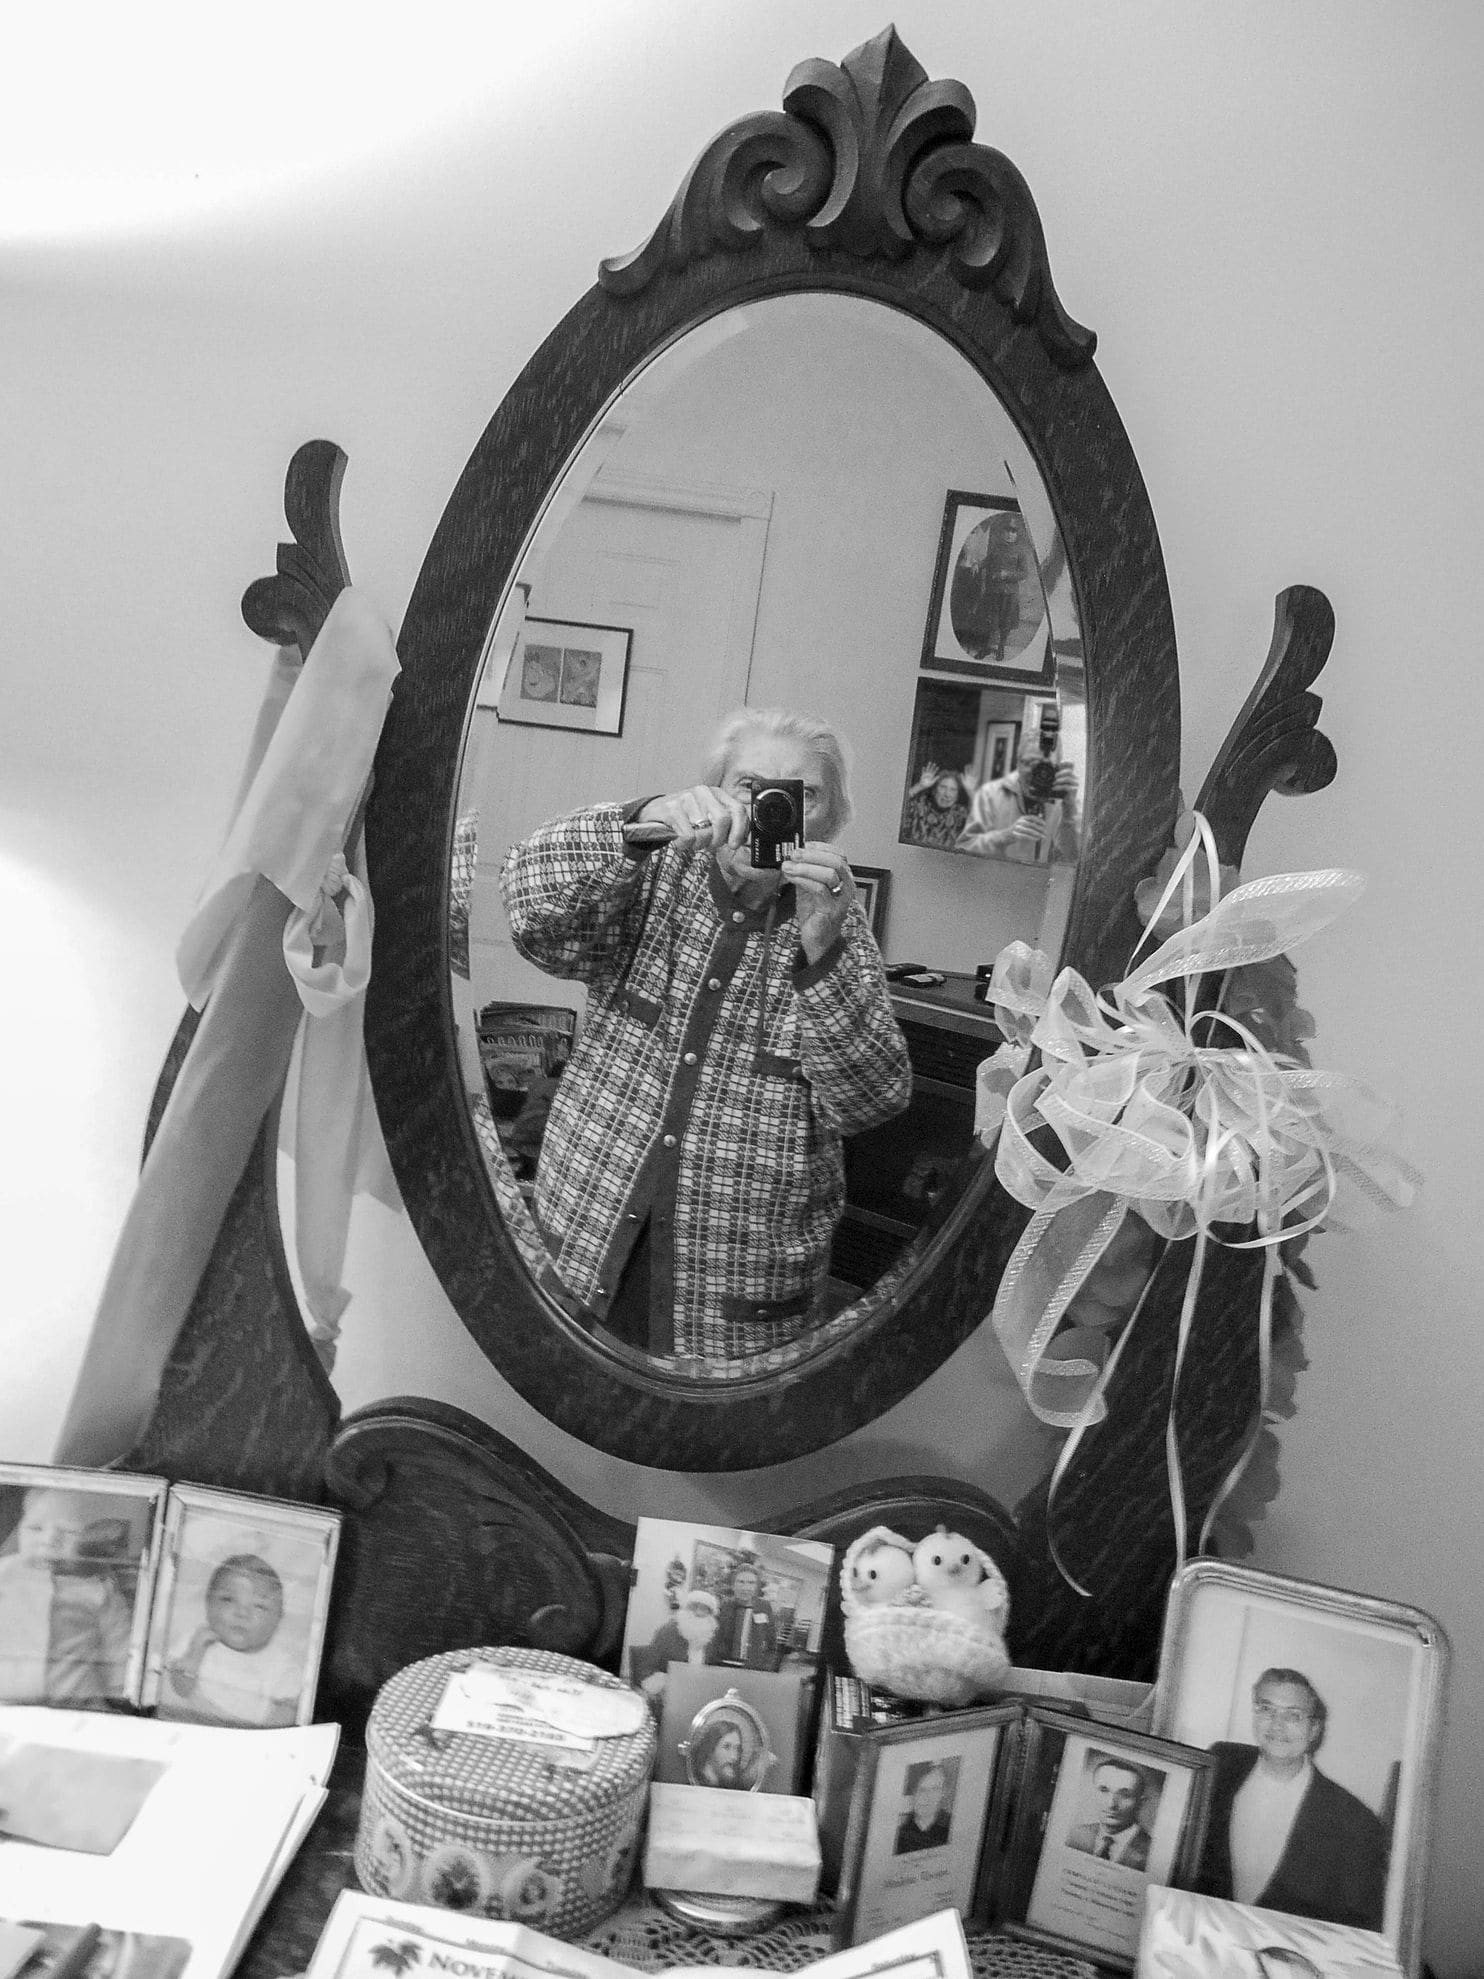 Elia Luciani's self-portrait from a mirror on a dresser covered with family photographs. (Elia Luciani)